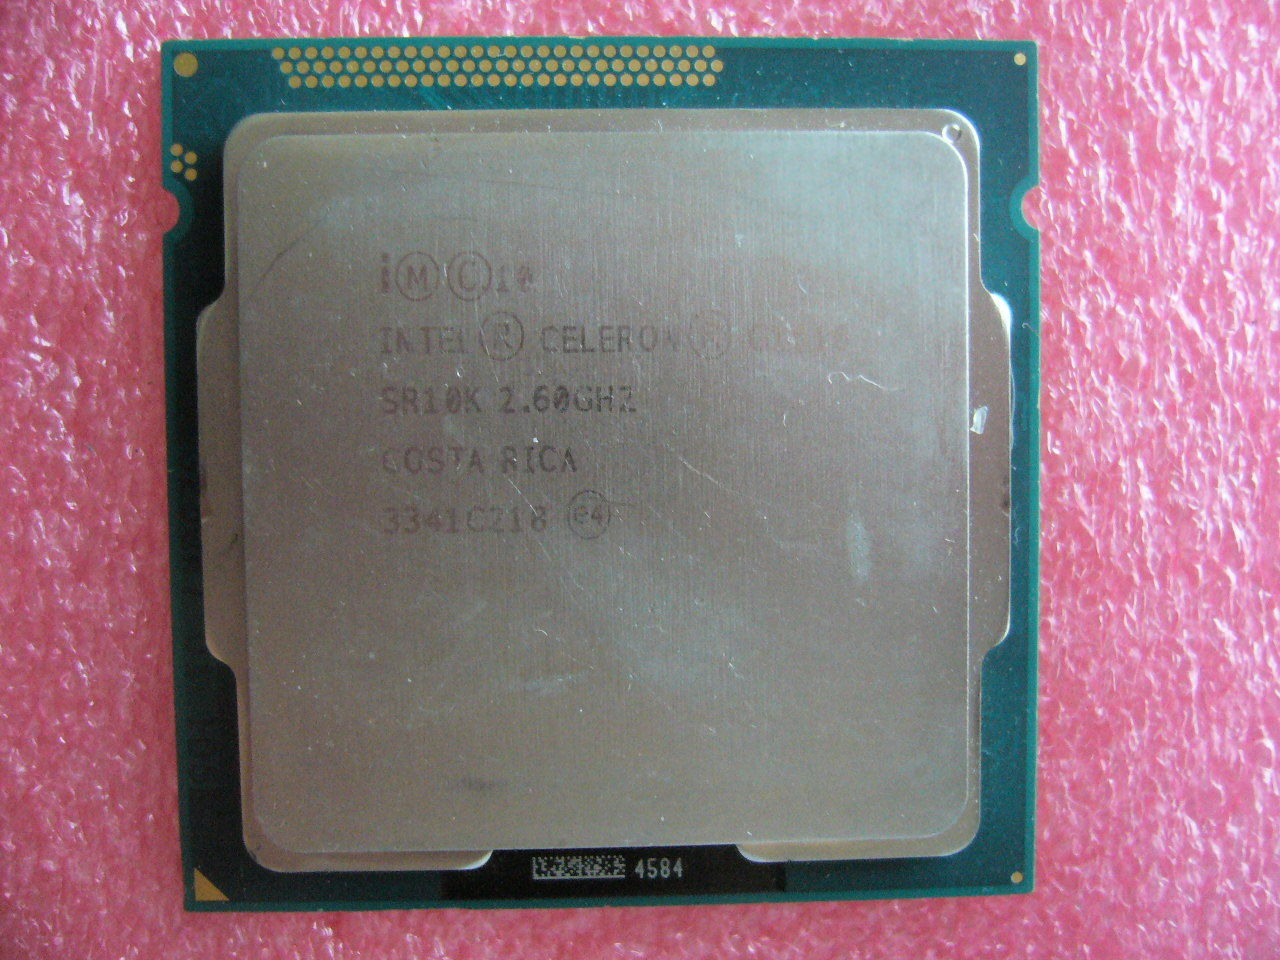 QTY 1x INTEL Celeron CPU G1610 2.6GHZ/2MB LGA1155 SR10K